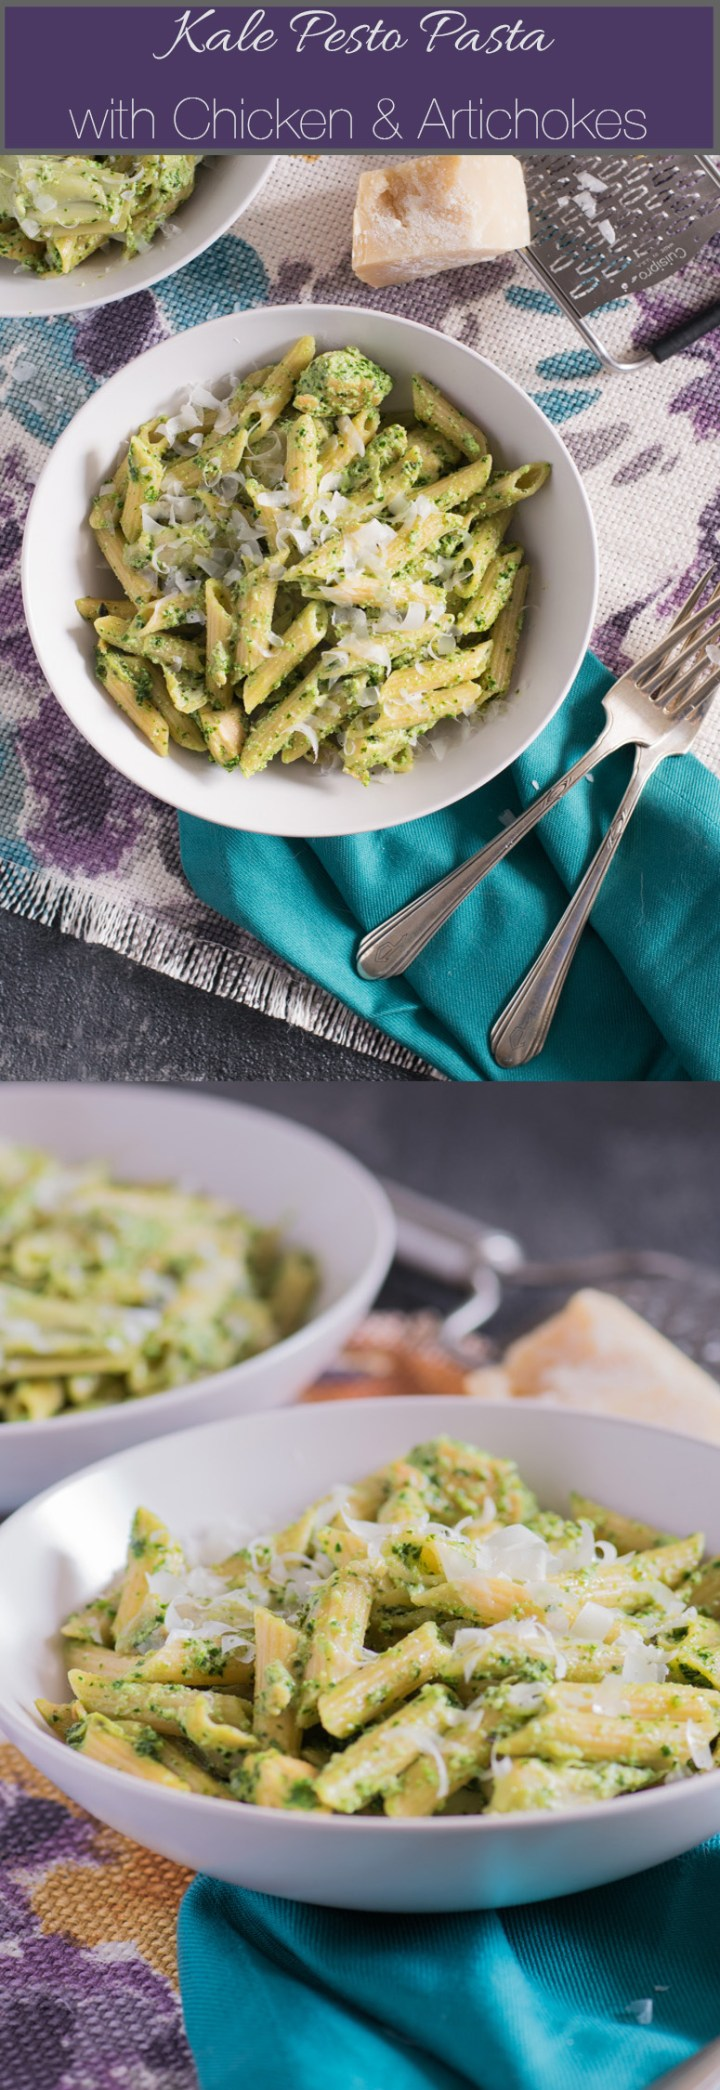 This chicken and artichoke pasta gets topped with creamy kale pesto sauce for healthier comfort food!